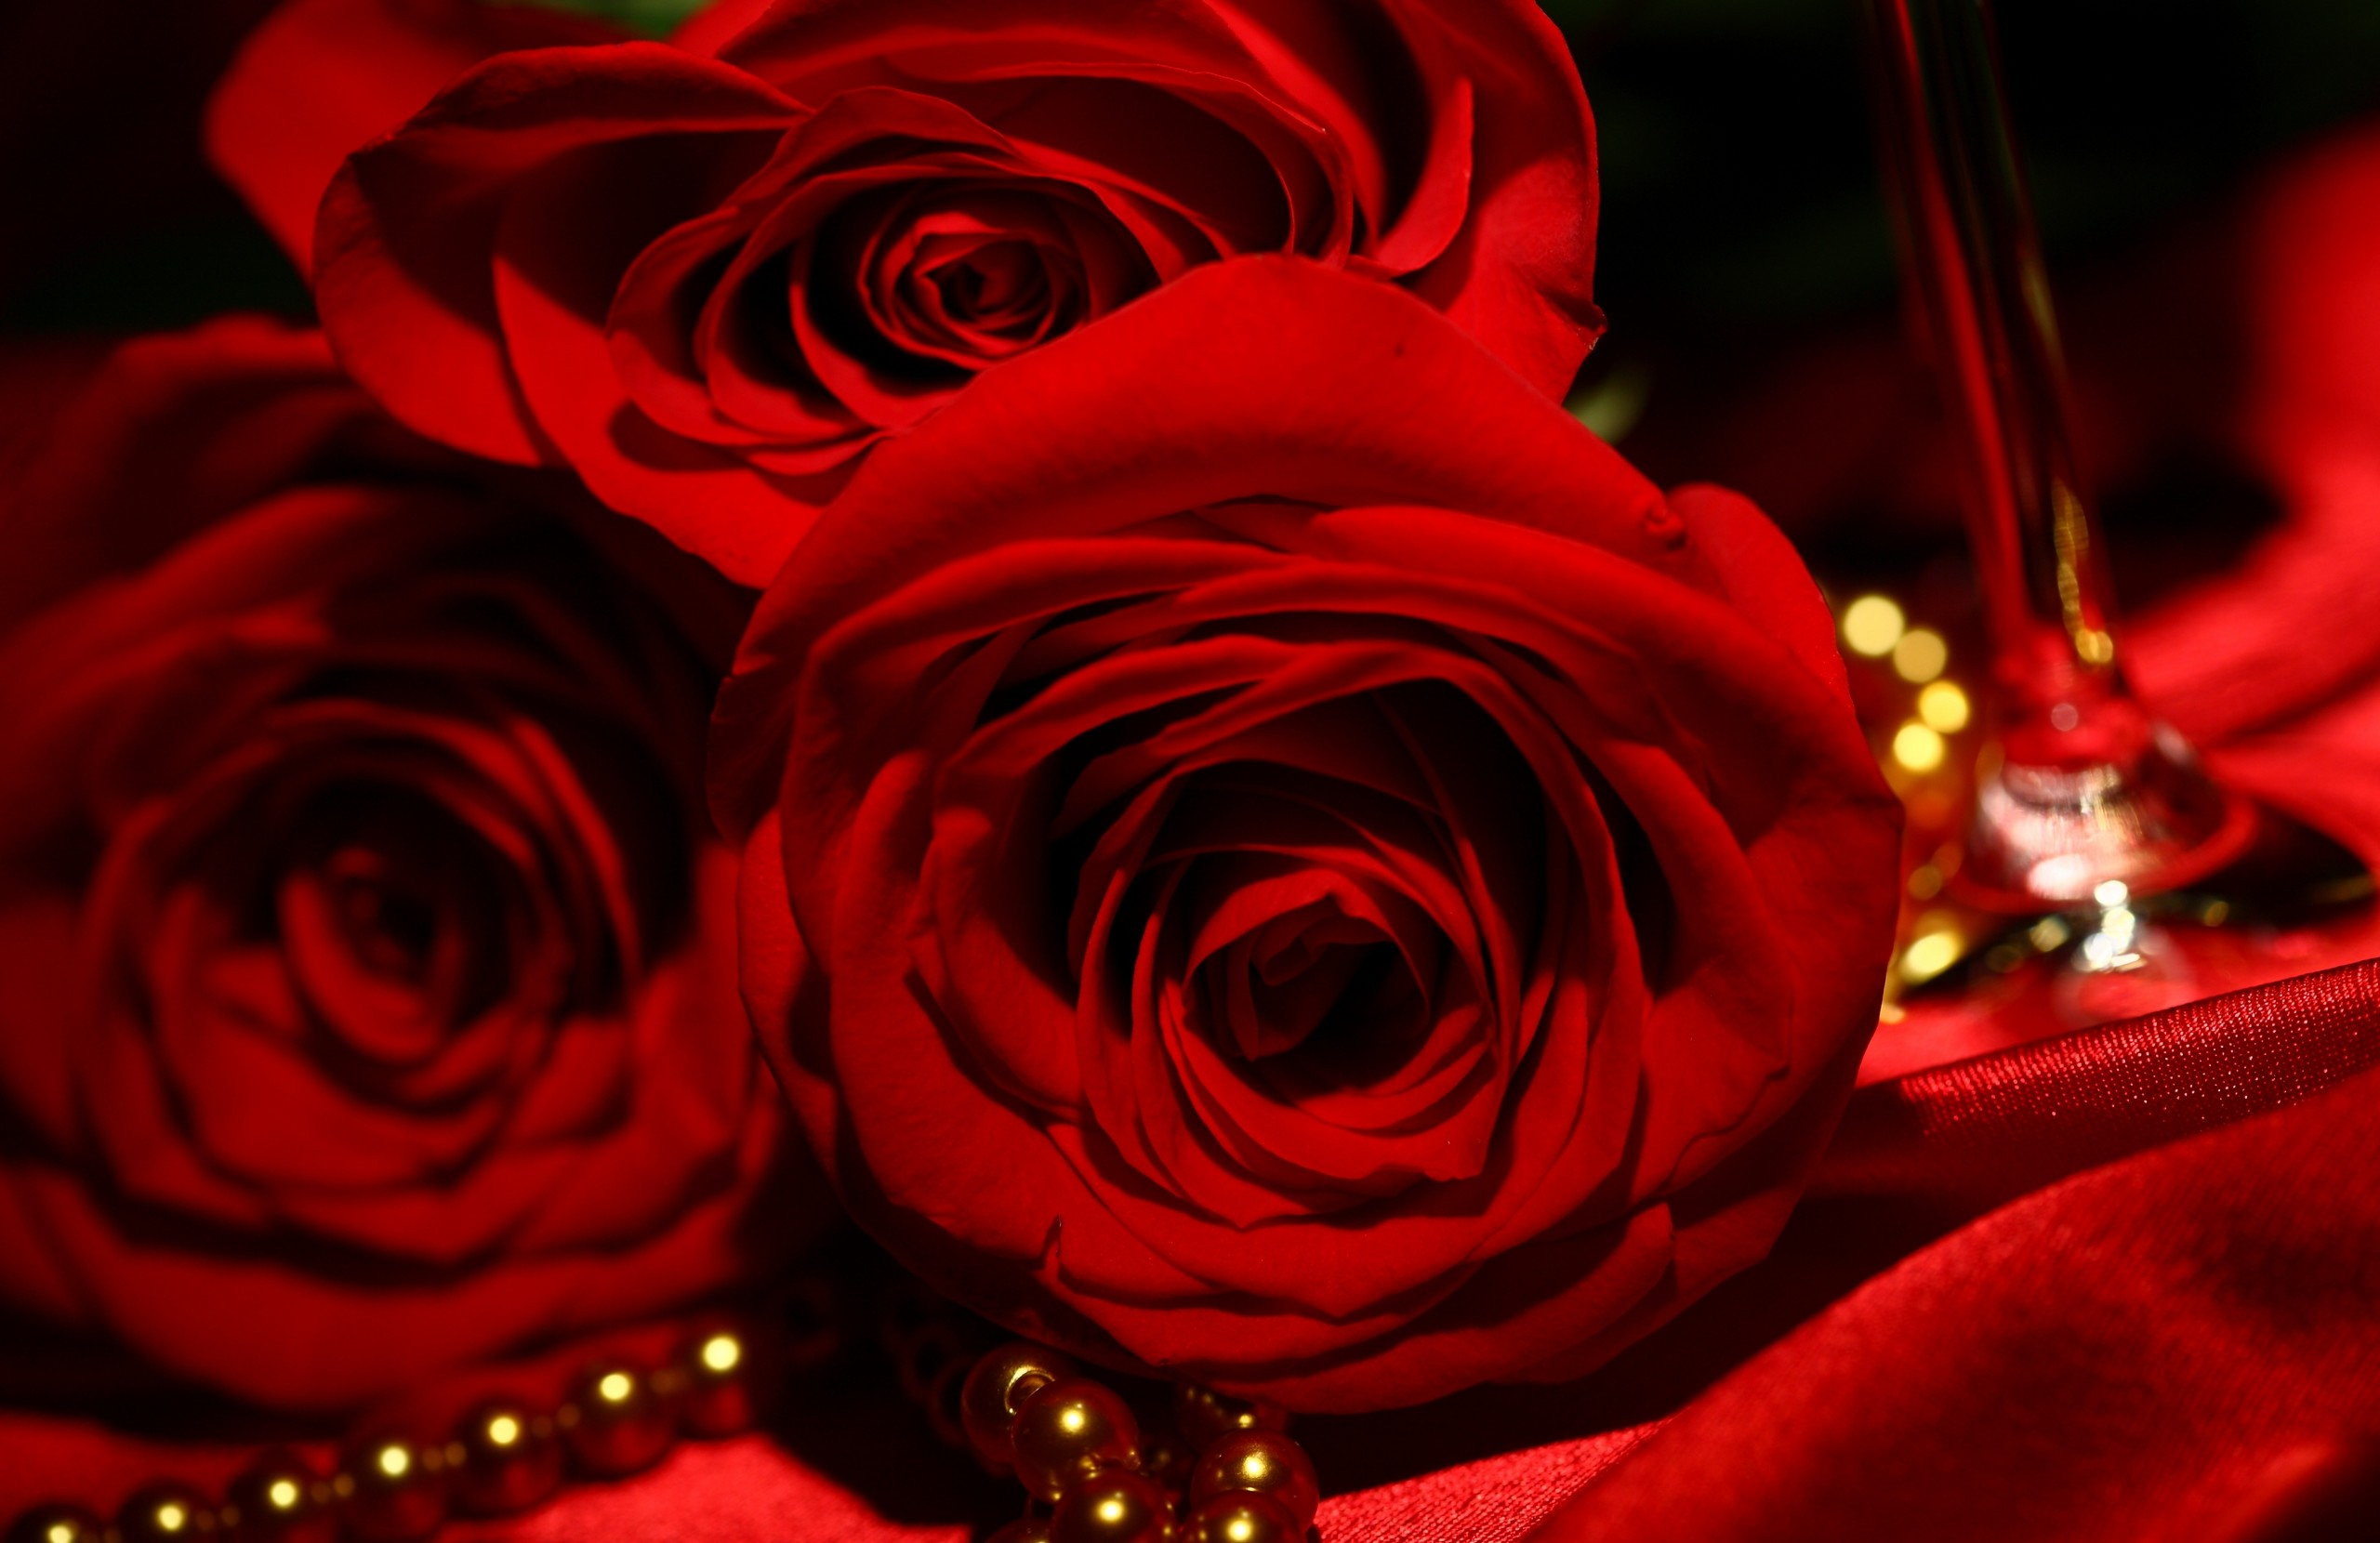 red rose wallpaper (72+ images)